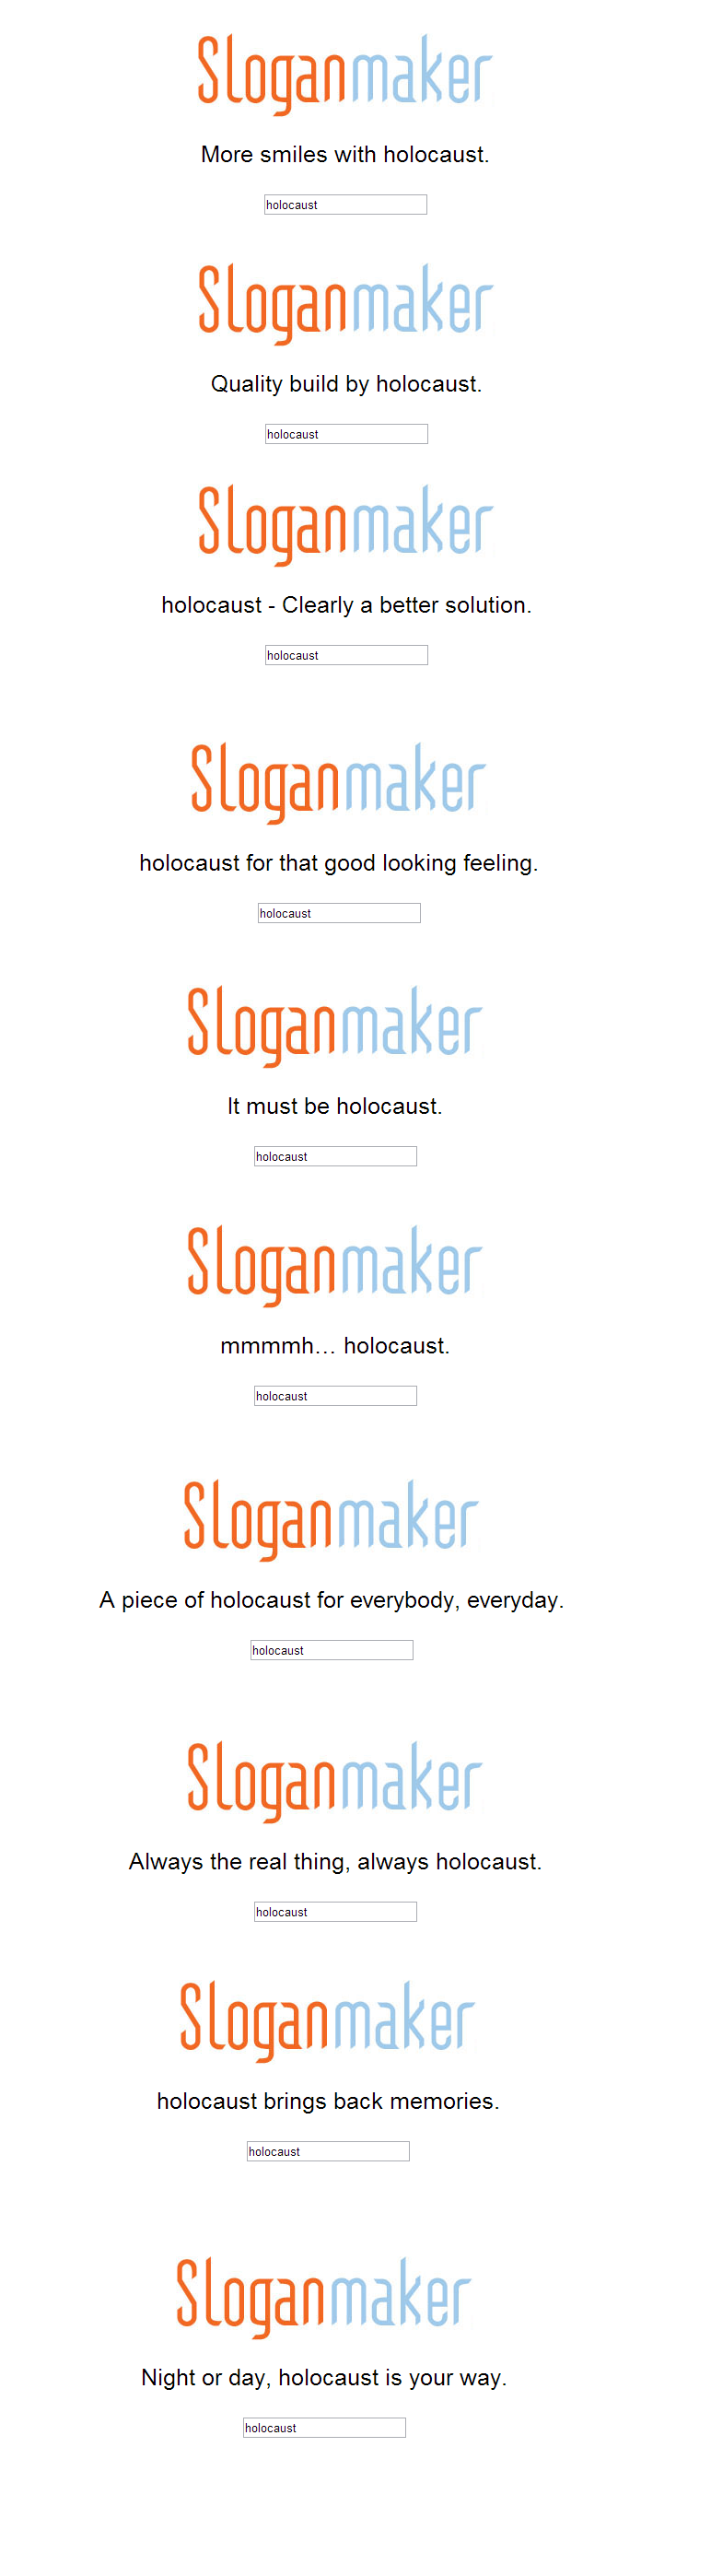 Oh Sloganmaker. Dont listen to the tags. Sloganmaker More smiles with holocaust. Sloganmaker Quality build by holocaust. Sloganmaker holocaust - Clearly a bette